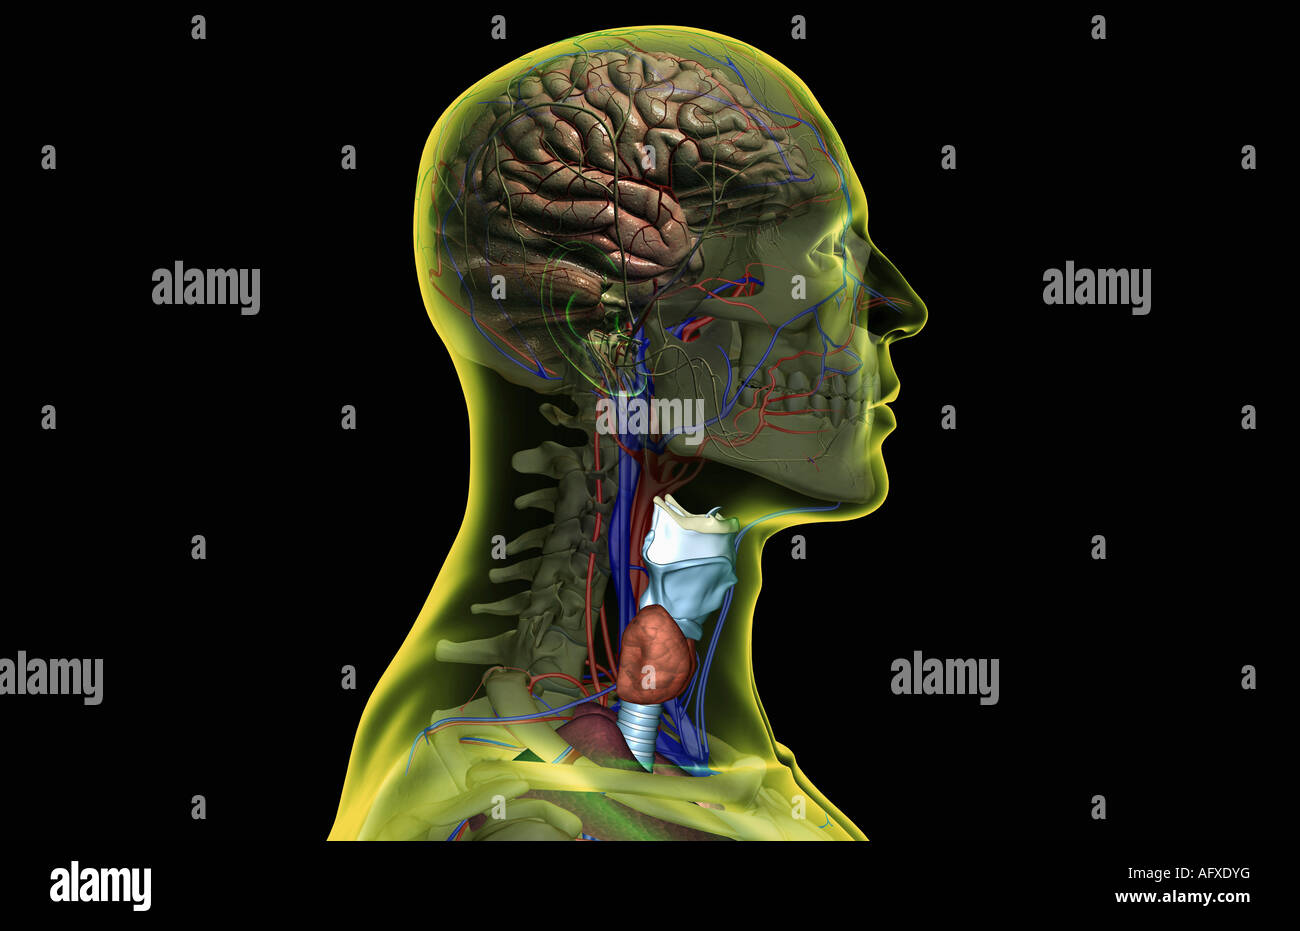 Nerve And Blood Supply Stock Photos & Nerve And Blood Supply Stock ...